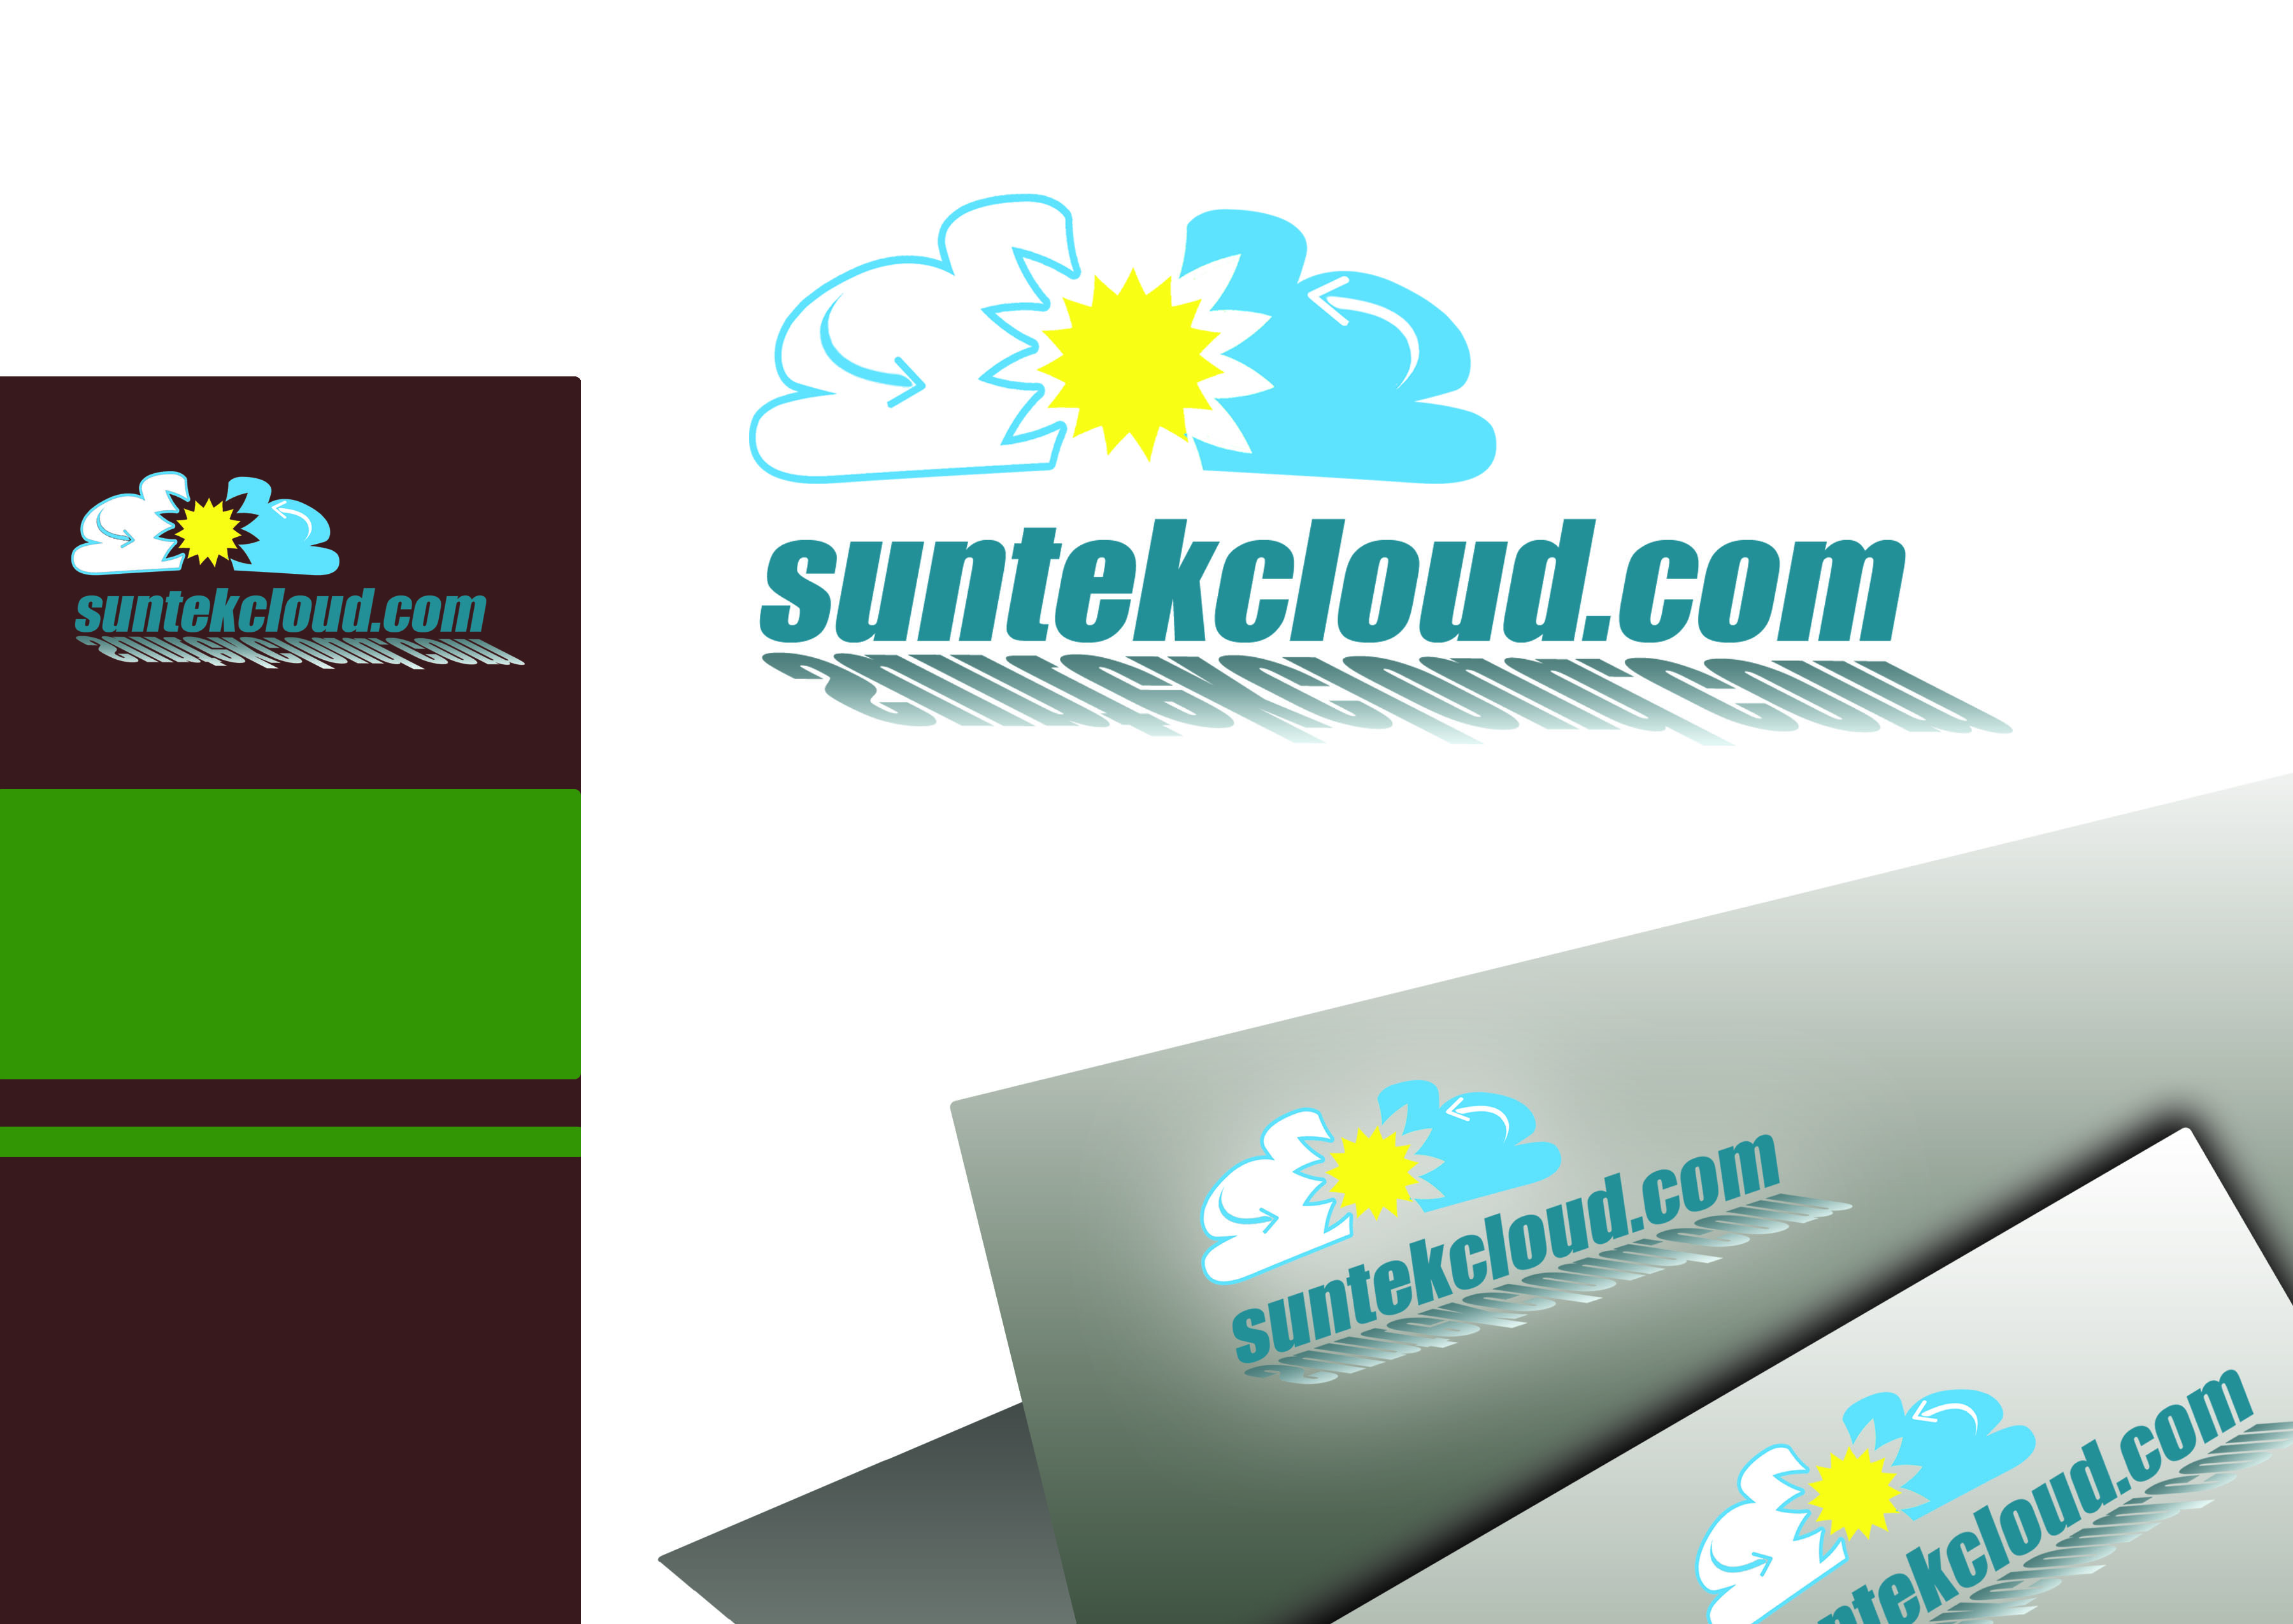 Logo Design by Alan Esclamado - Entry No. 26 in the Logo Design Contest Imaginative Logo Design for suntekcloud.com.